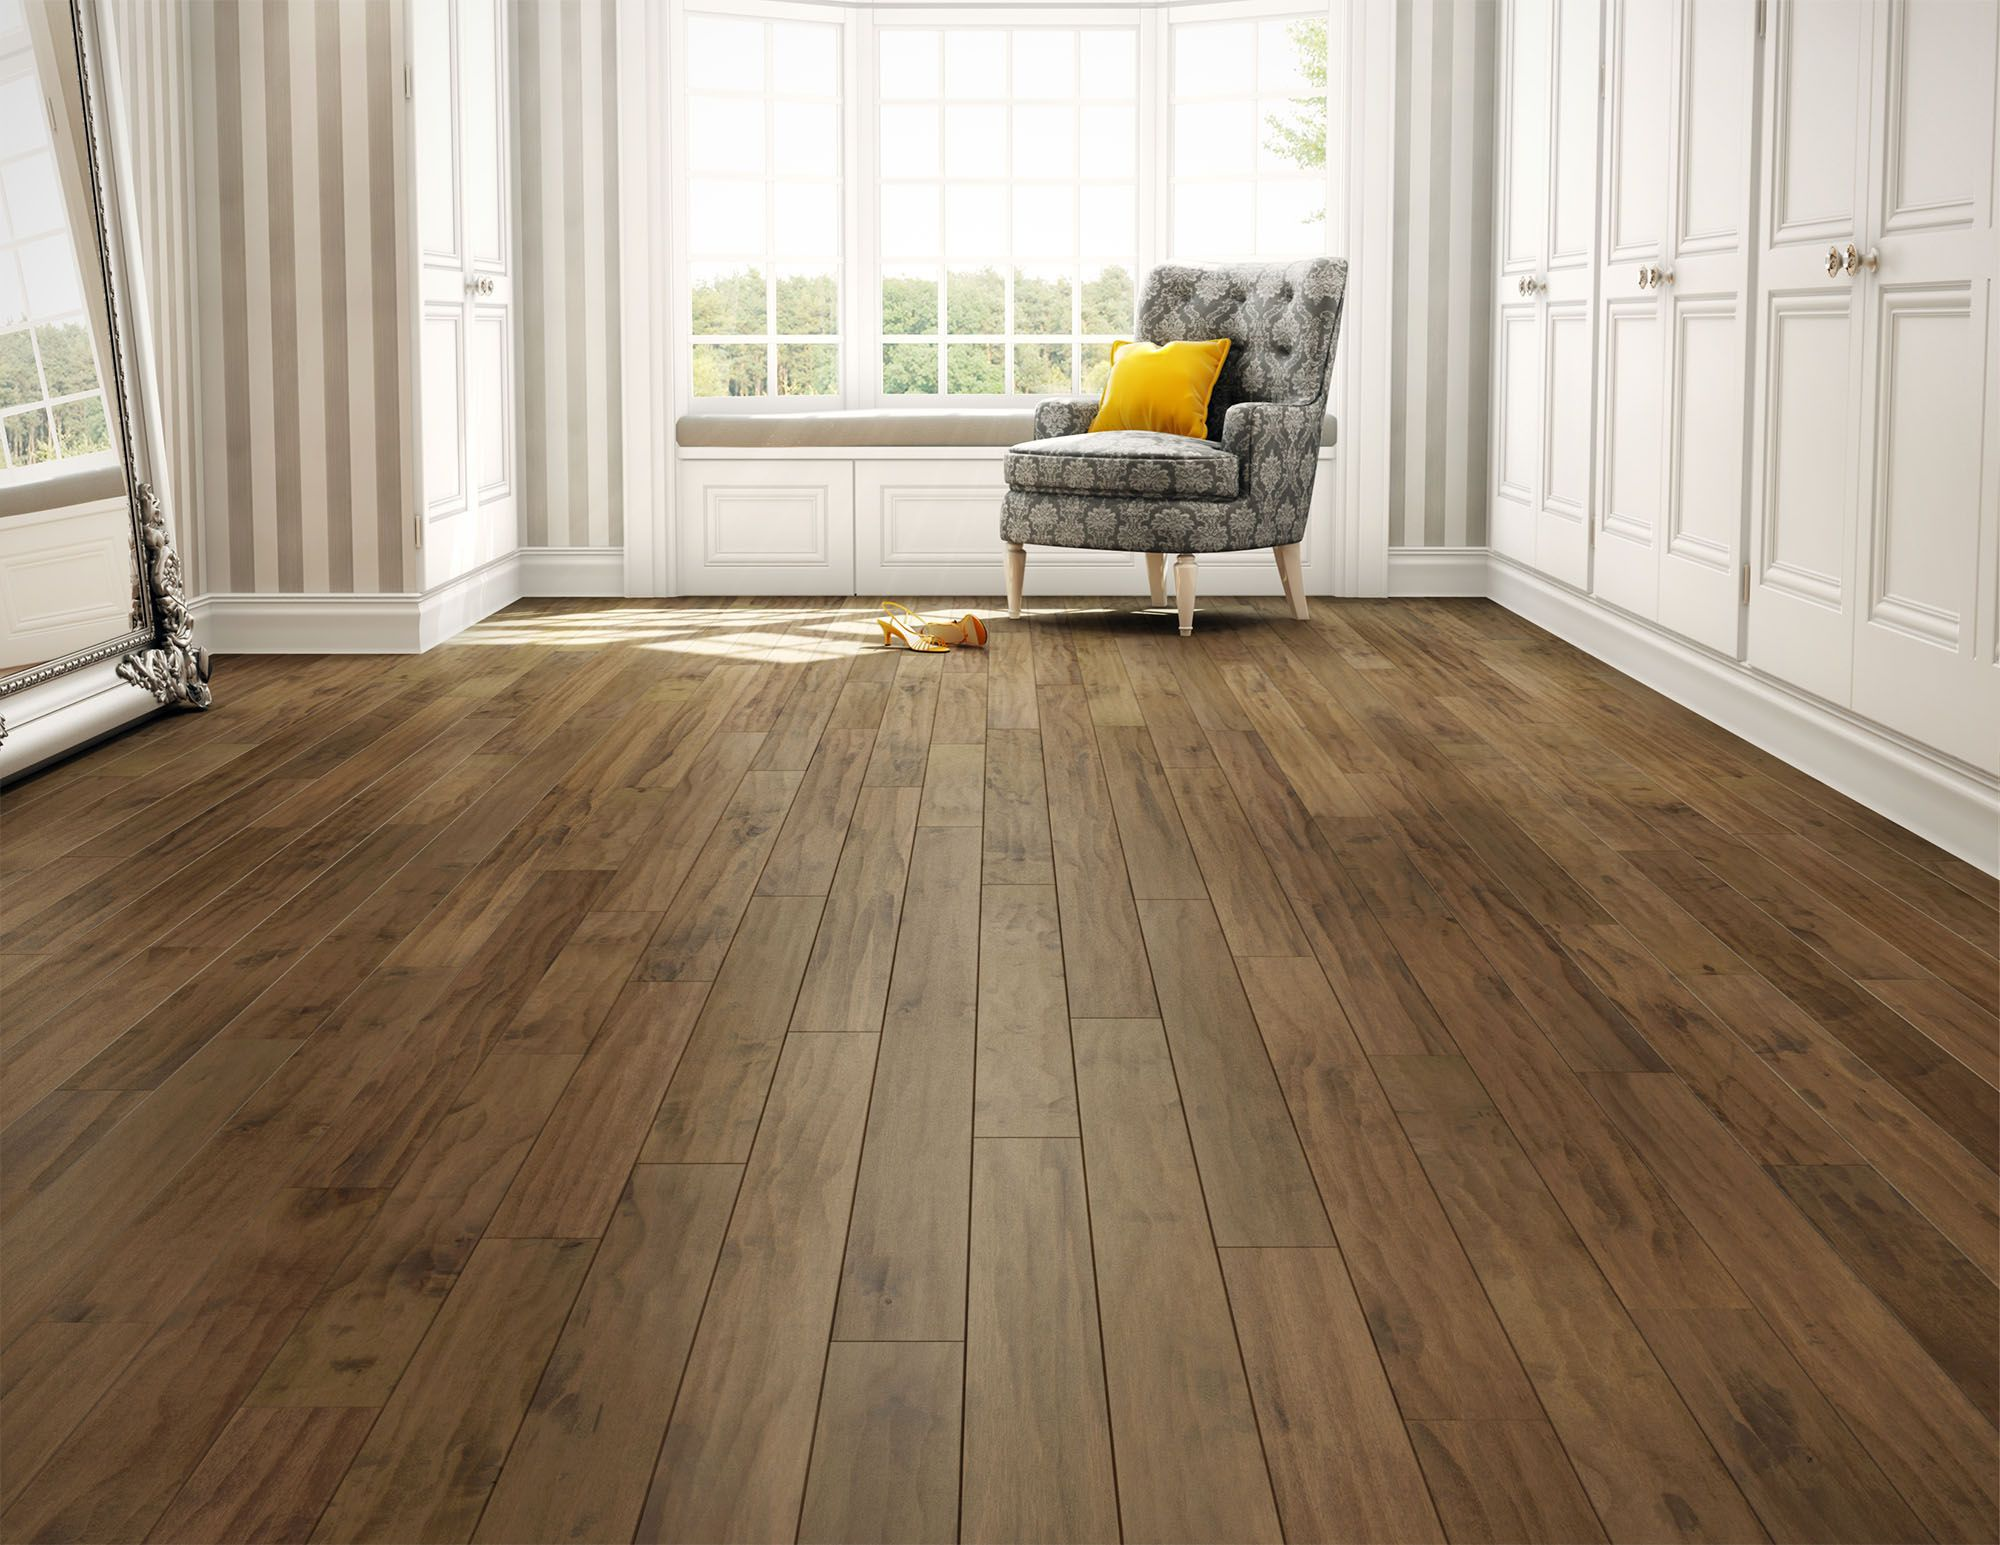 Foyer Hardwood Floors : Best foyer flooring image with caption quot wave texture